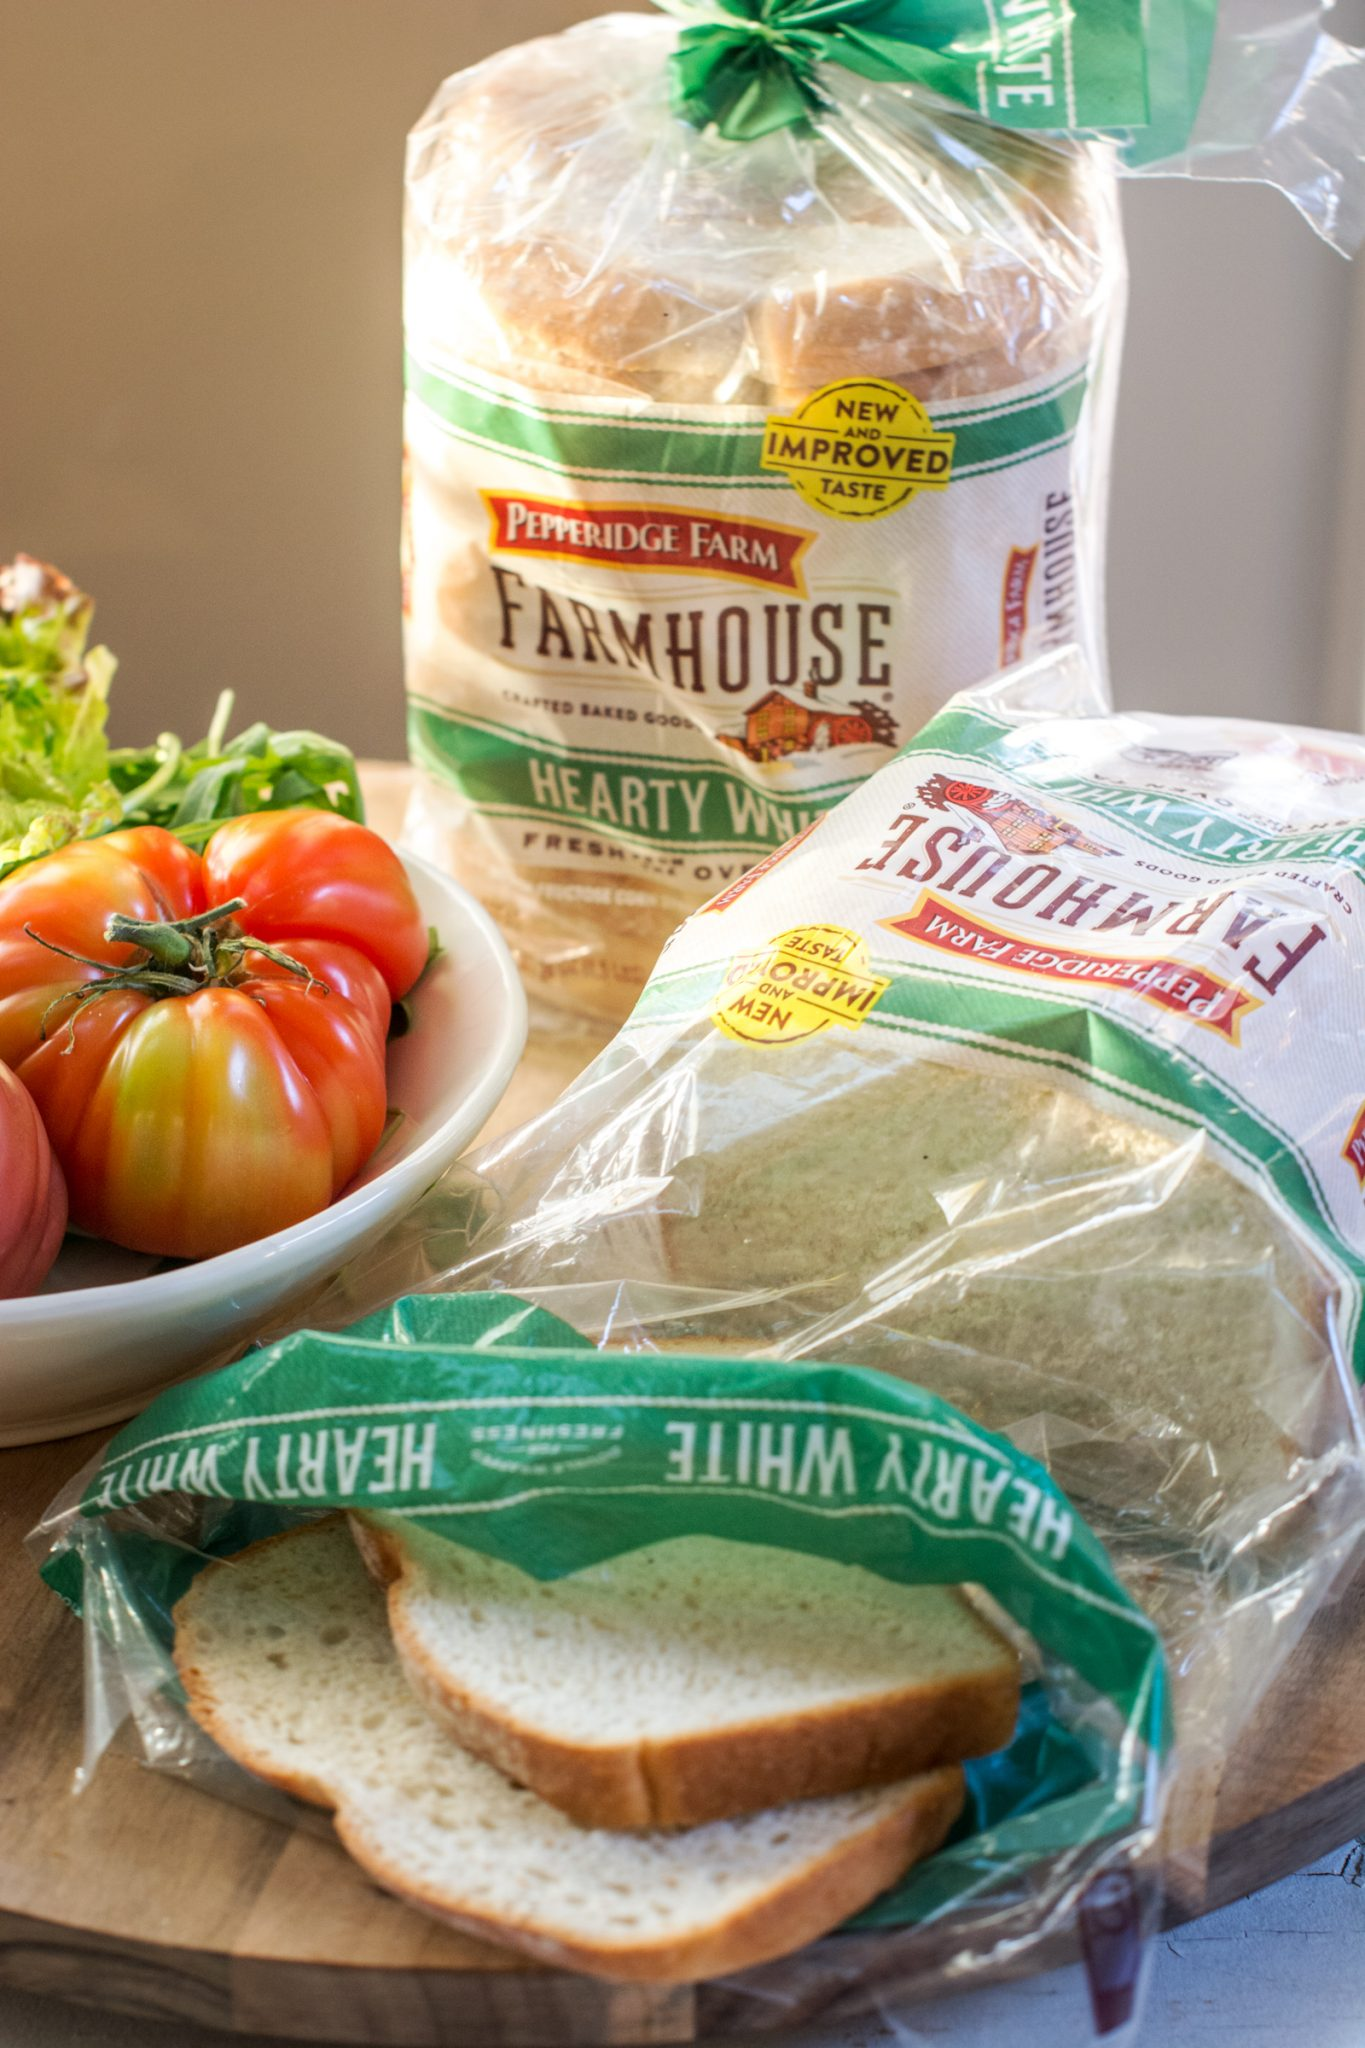 Pepperidge Farm hearty white bread in wrapping beside a bowl of tomatoes.